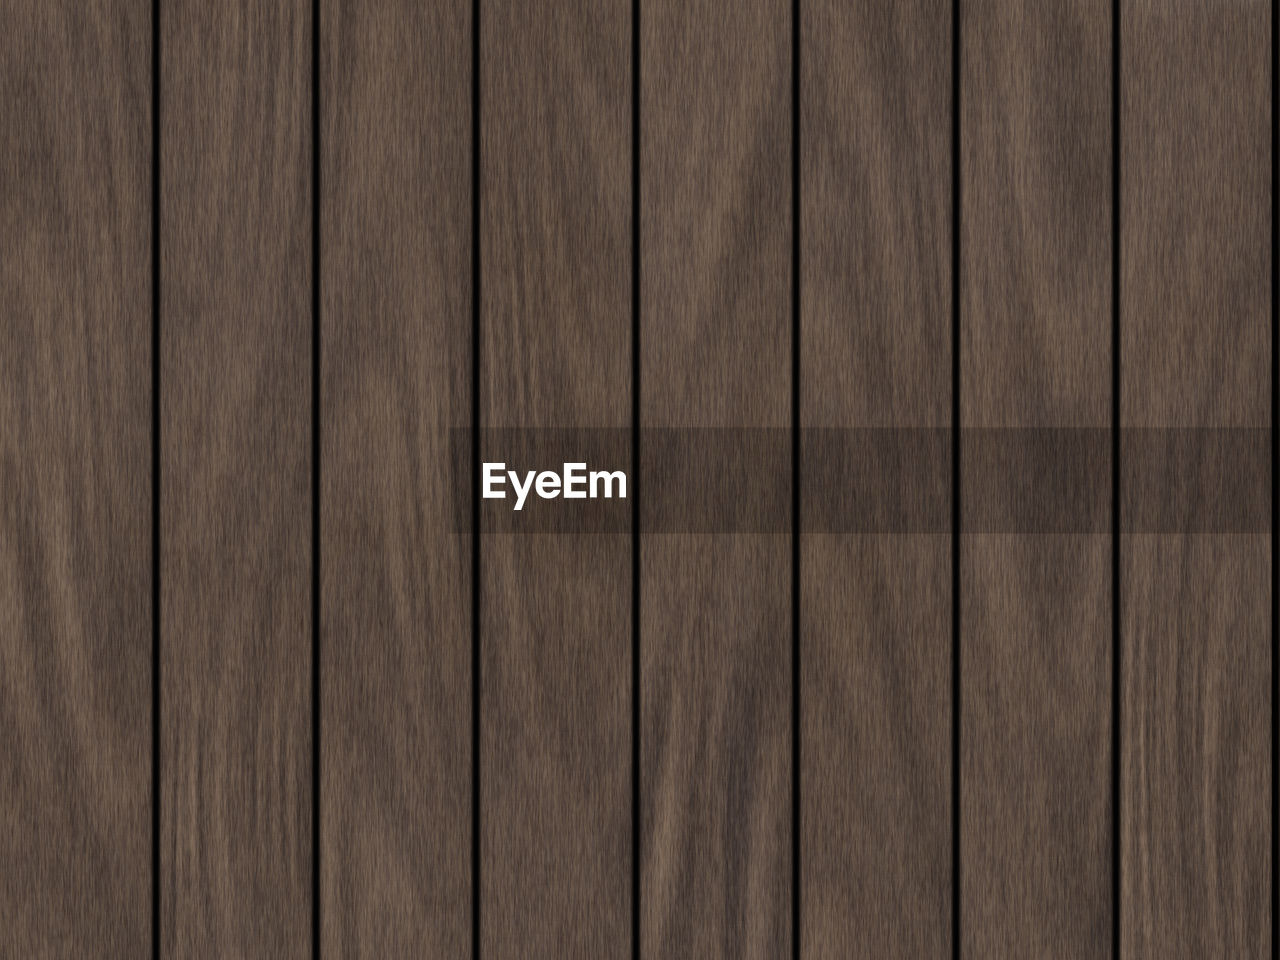 backgrounds, wood - material, full frame, pattern, textured, wood, brown, flooring, wood grain, no people, plank, striped, hardwood, close-up, material, wood paneling, indoors, timber, abstract, hardwood floor, parquet floor, surface level, textured effect